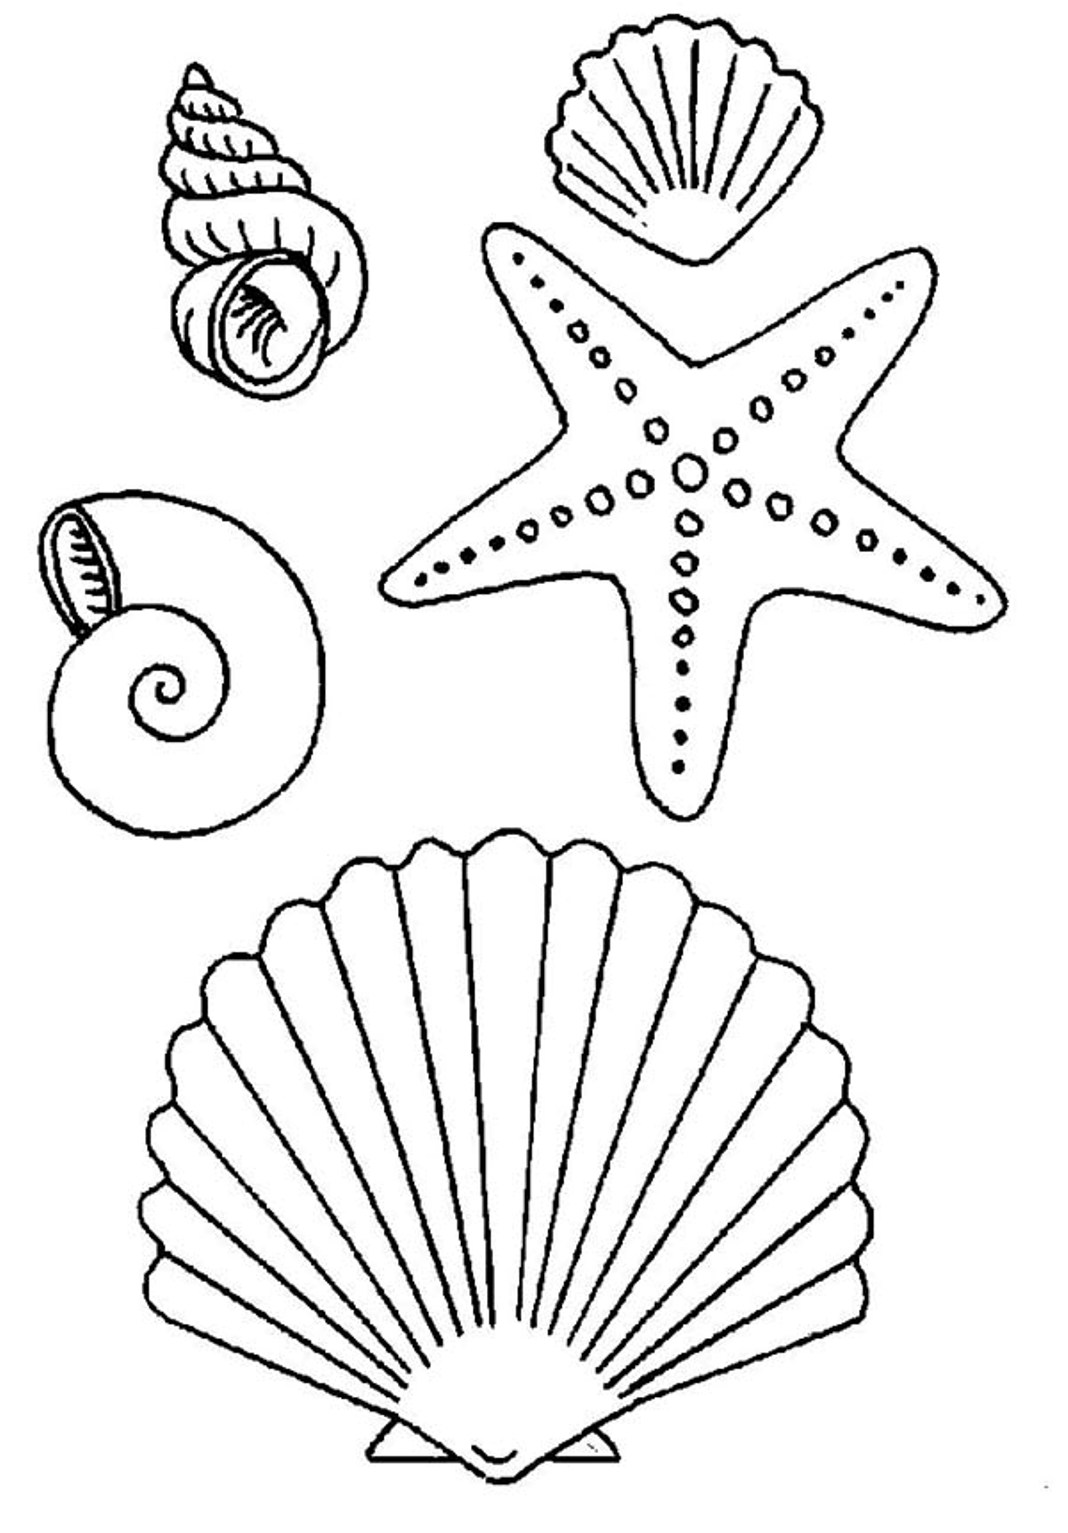 This is a graphic of Seashell Template Free Printable with editable